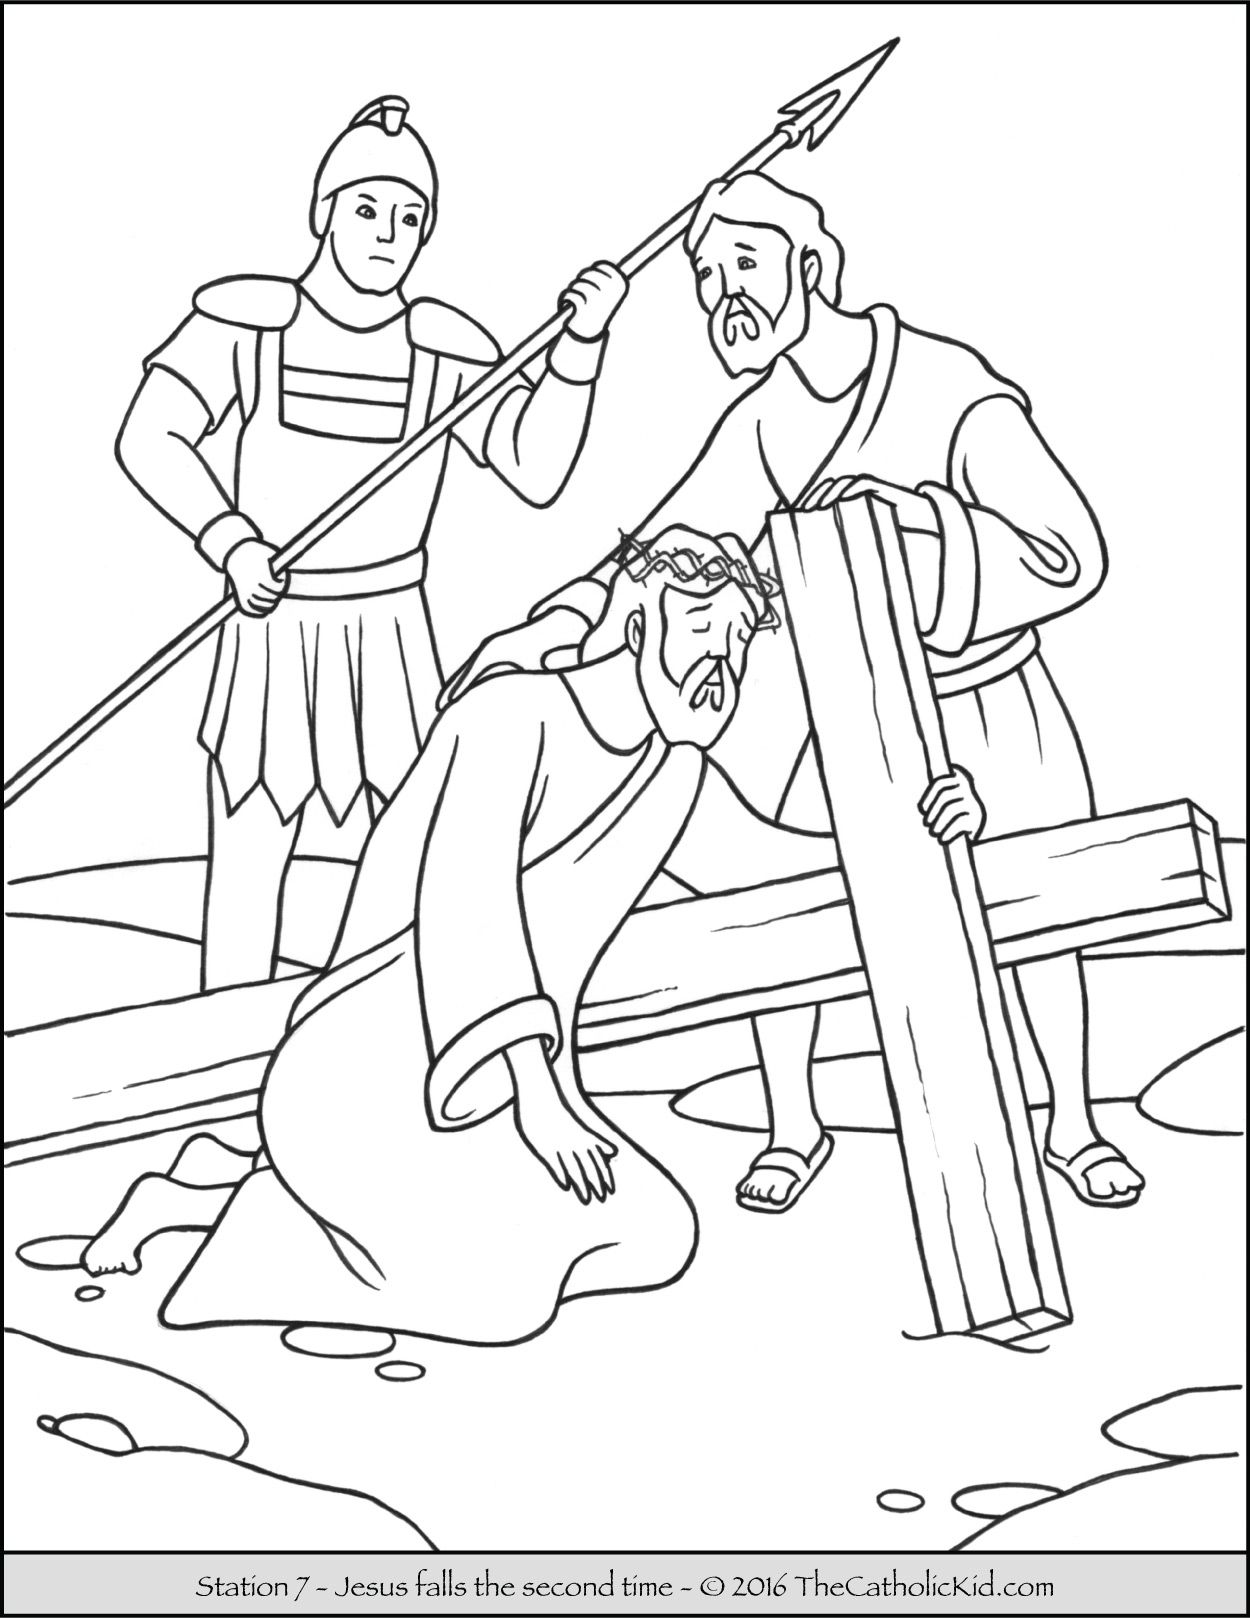 stations of the cross coloring catholic stations of the cross coloring pages stations cross the stations of coloring